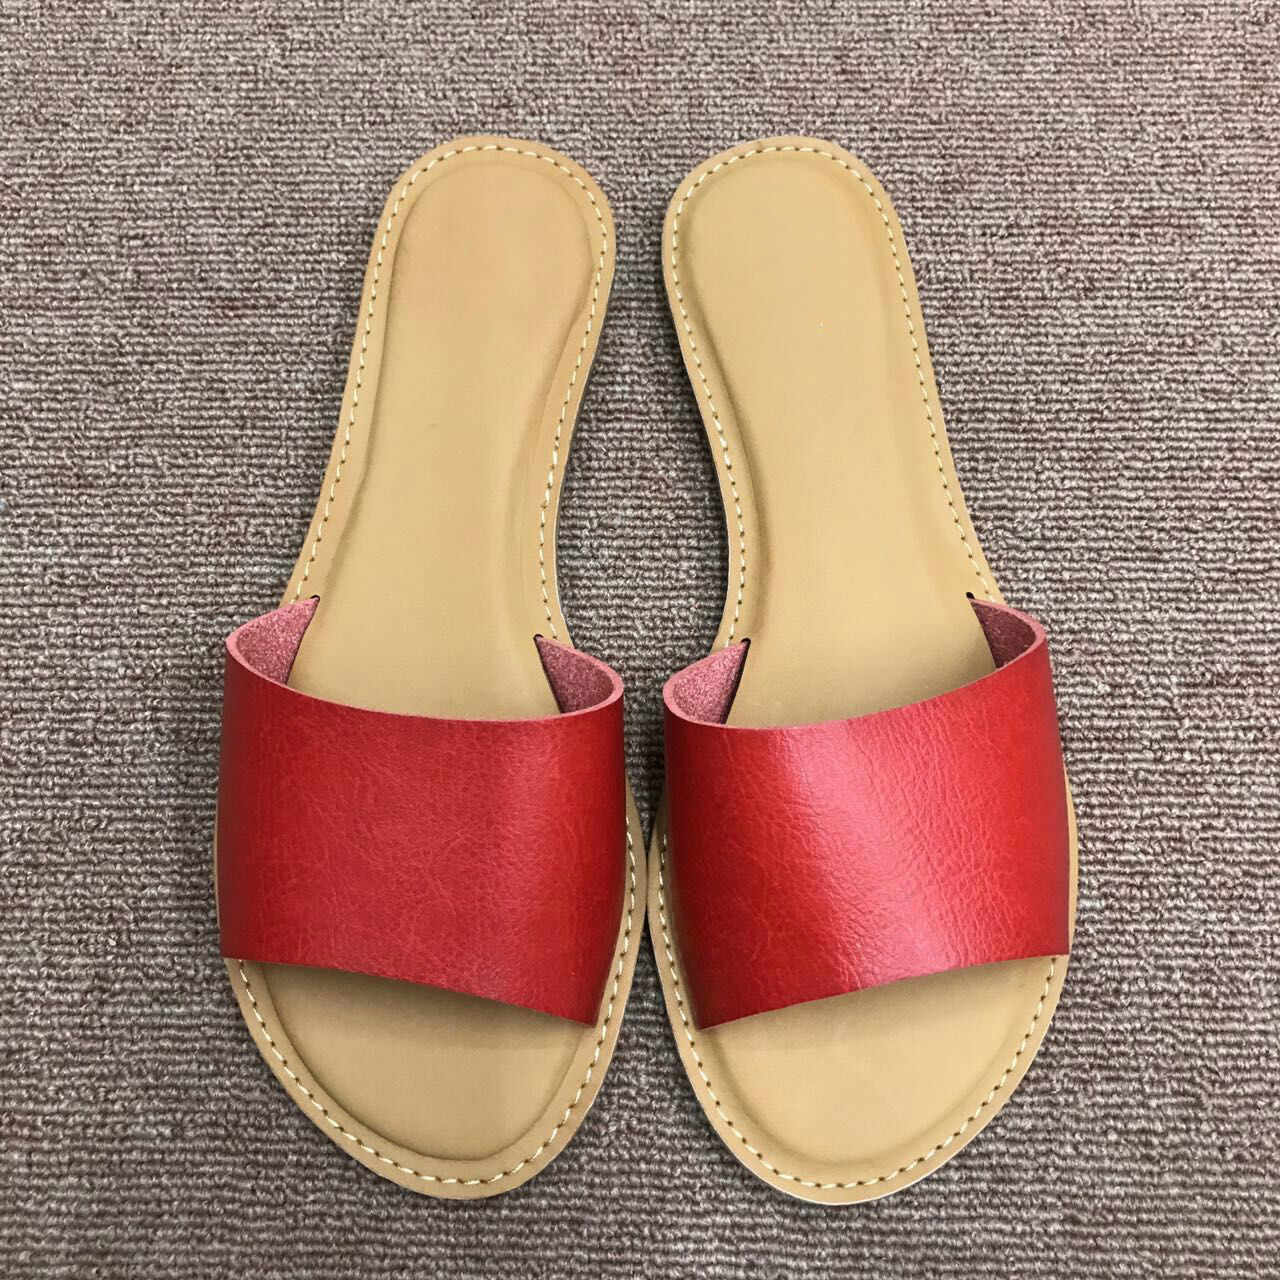 187d21948c00d7 Woman Slippers 2019 Summer New Fashion Slides Womans Sandals Summer Flats  Outdoor Shoes Women Beach Shoes